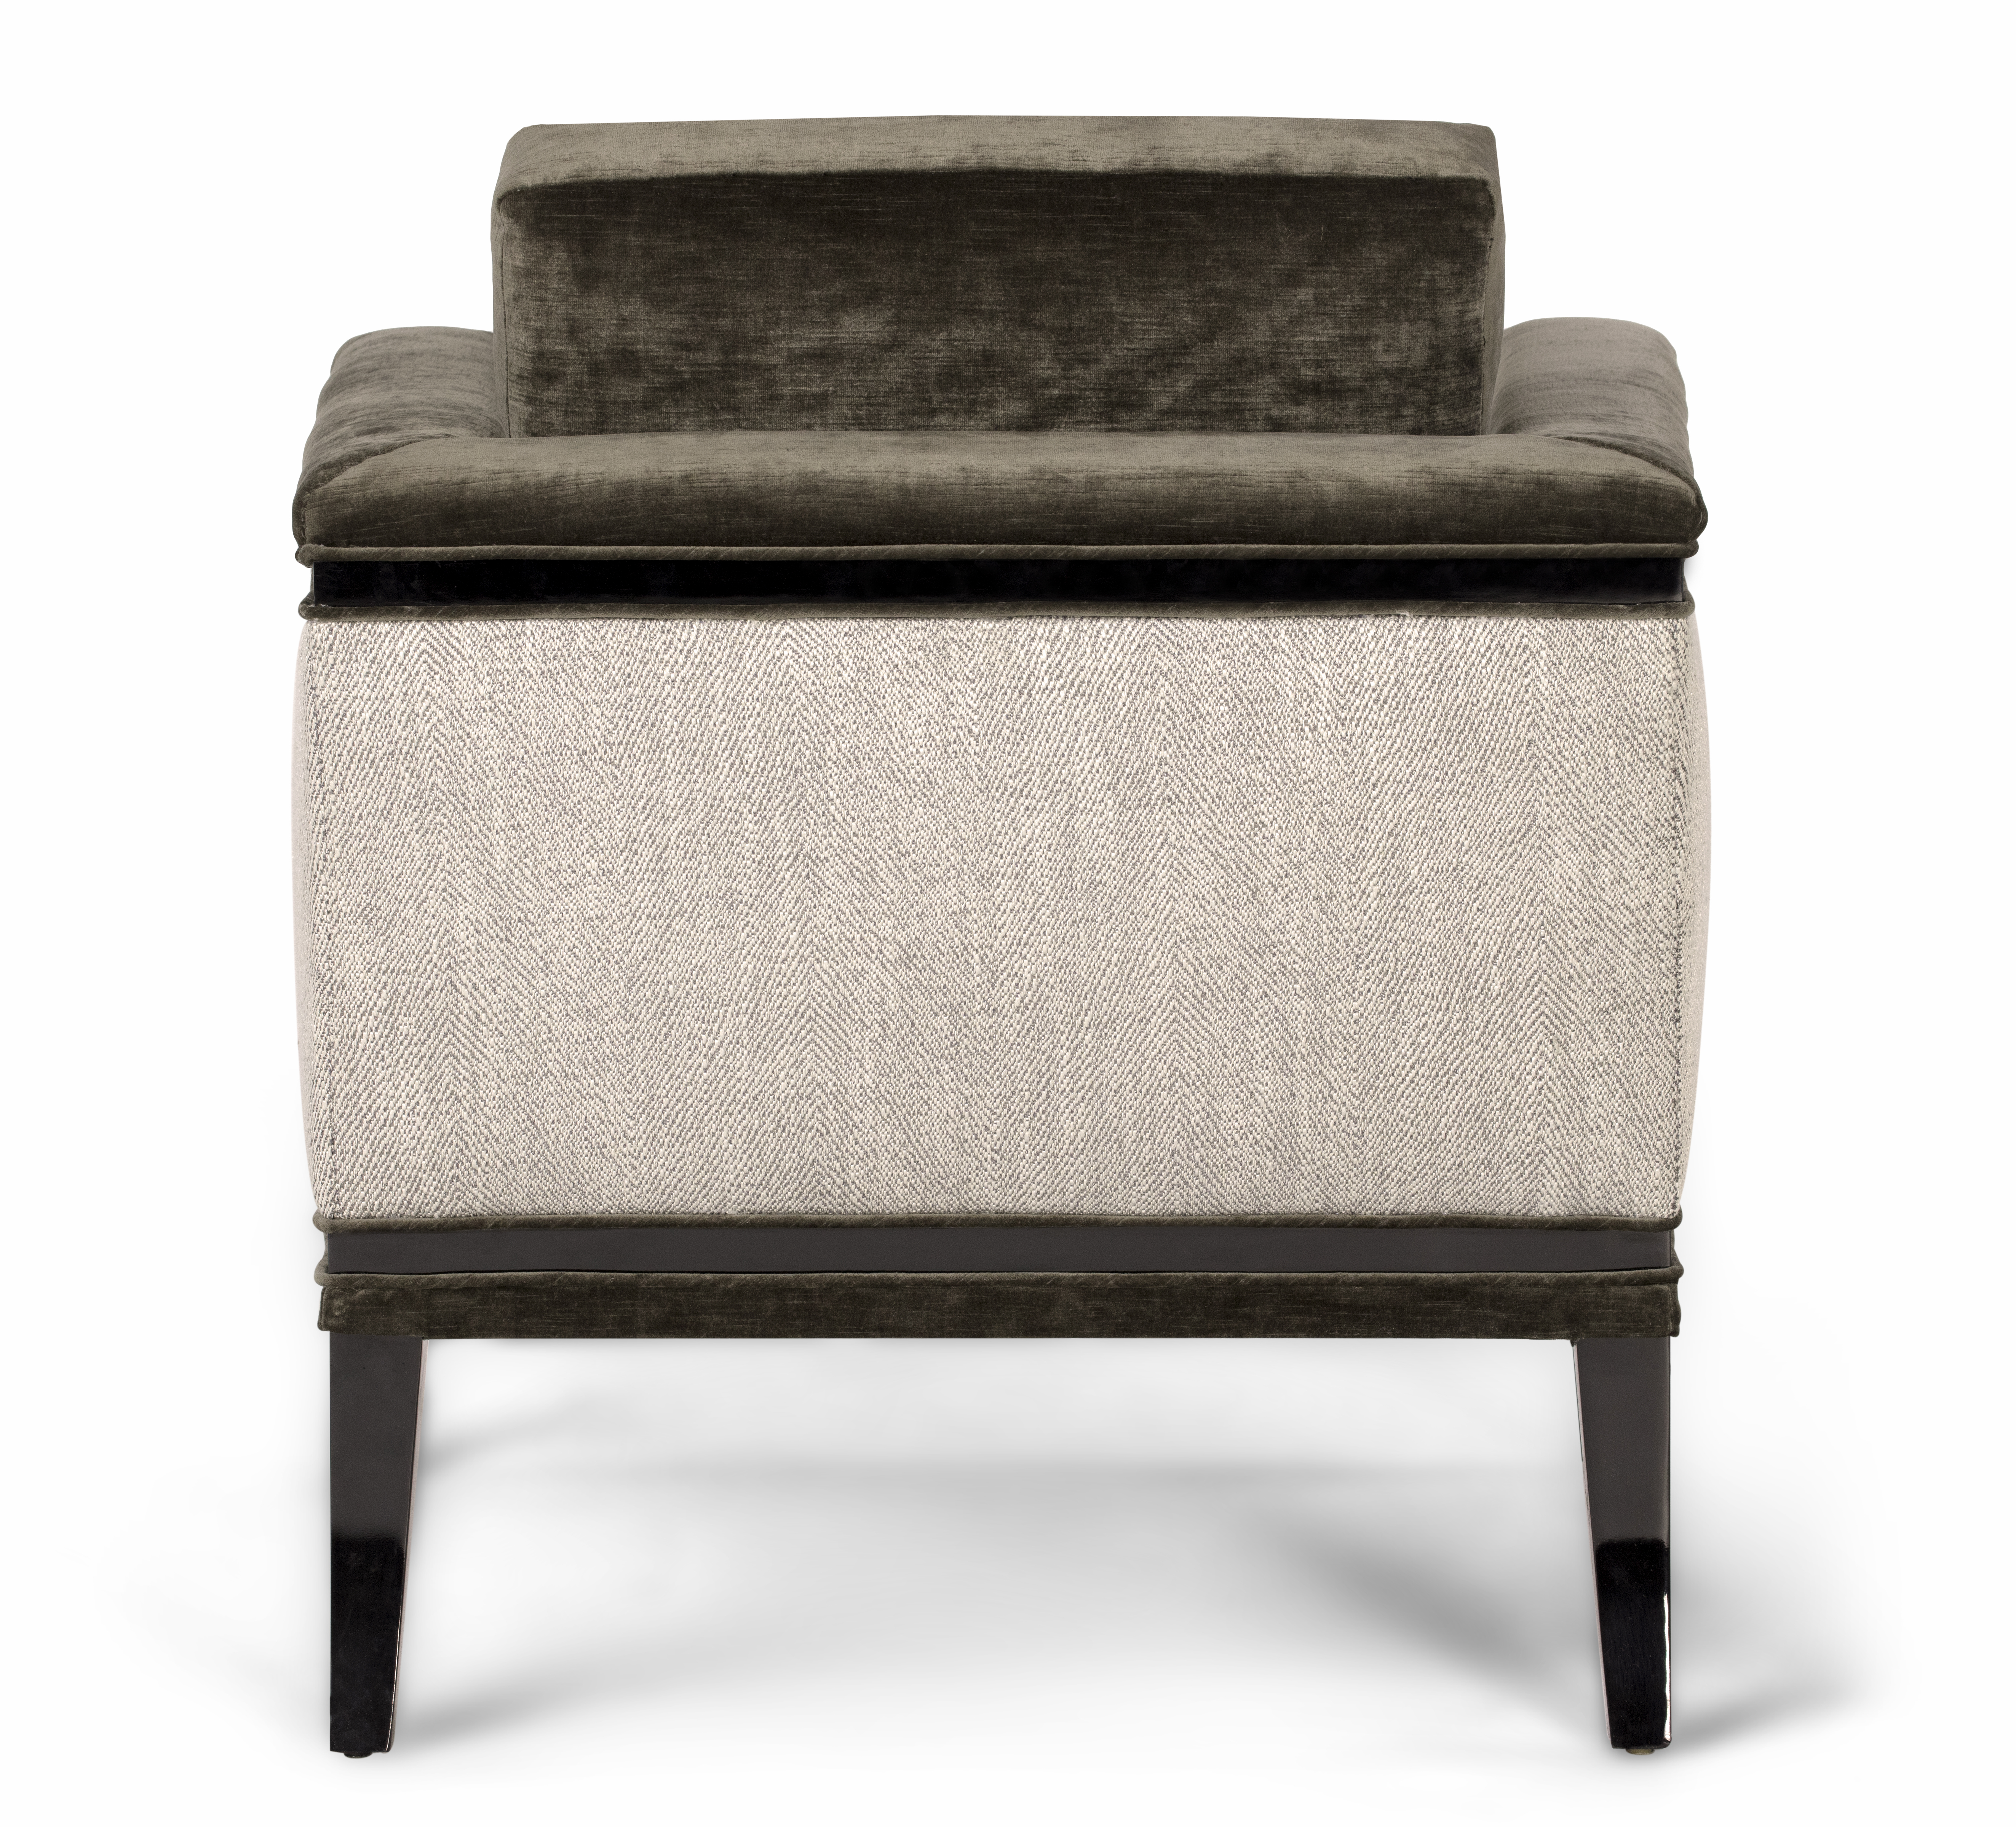 Badgley-Mischka-Home-Doheny-Lounge-Chair